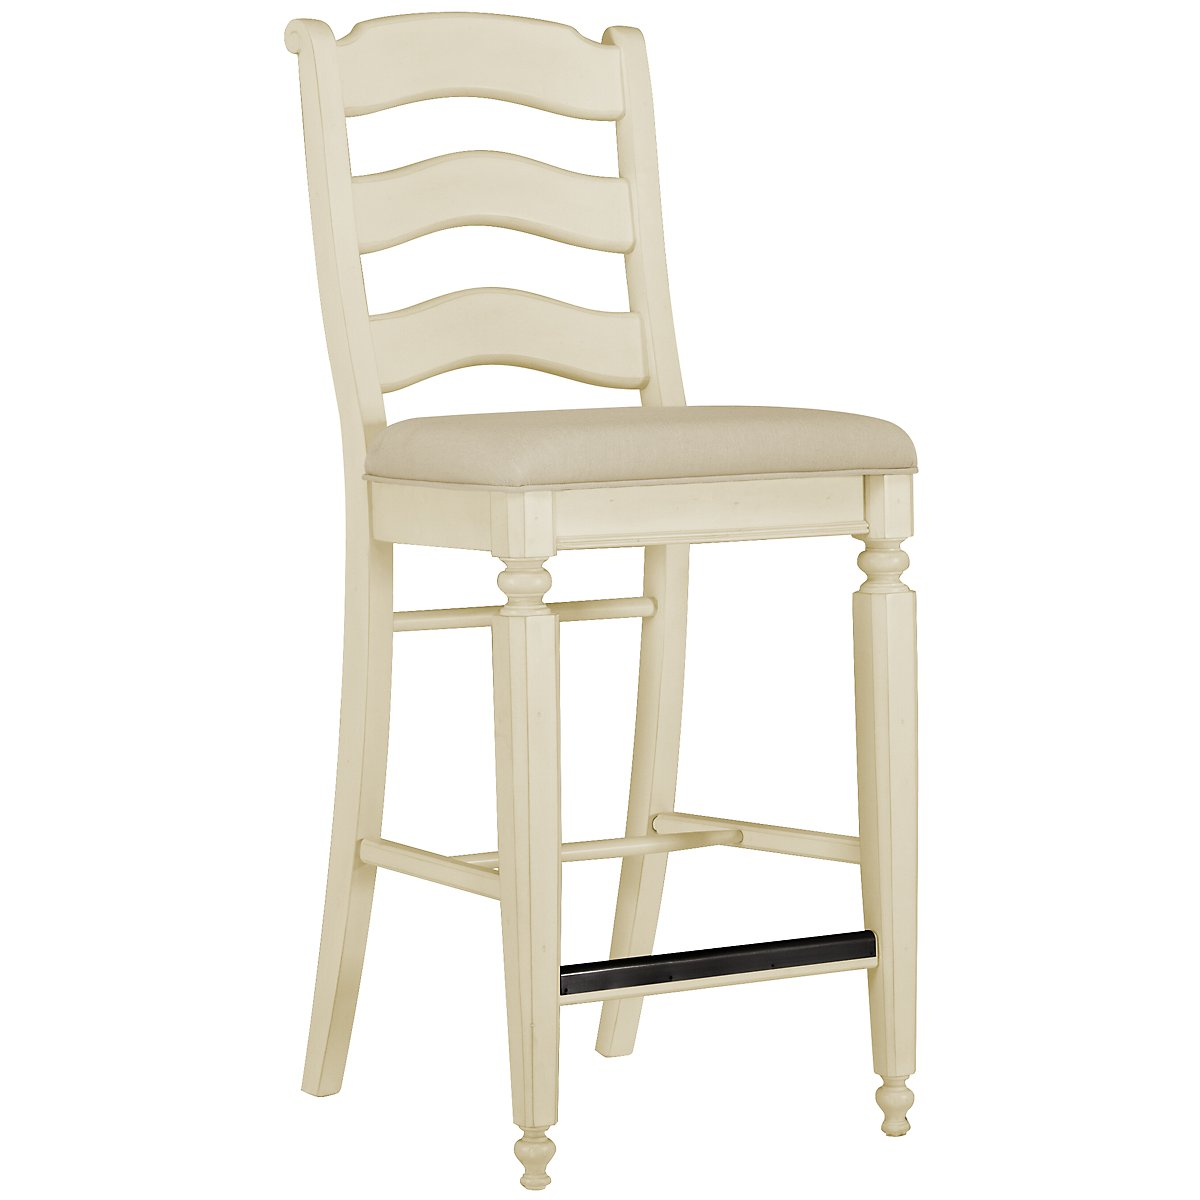 "Claire White 30"" Wood Barstool"